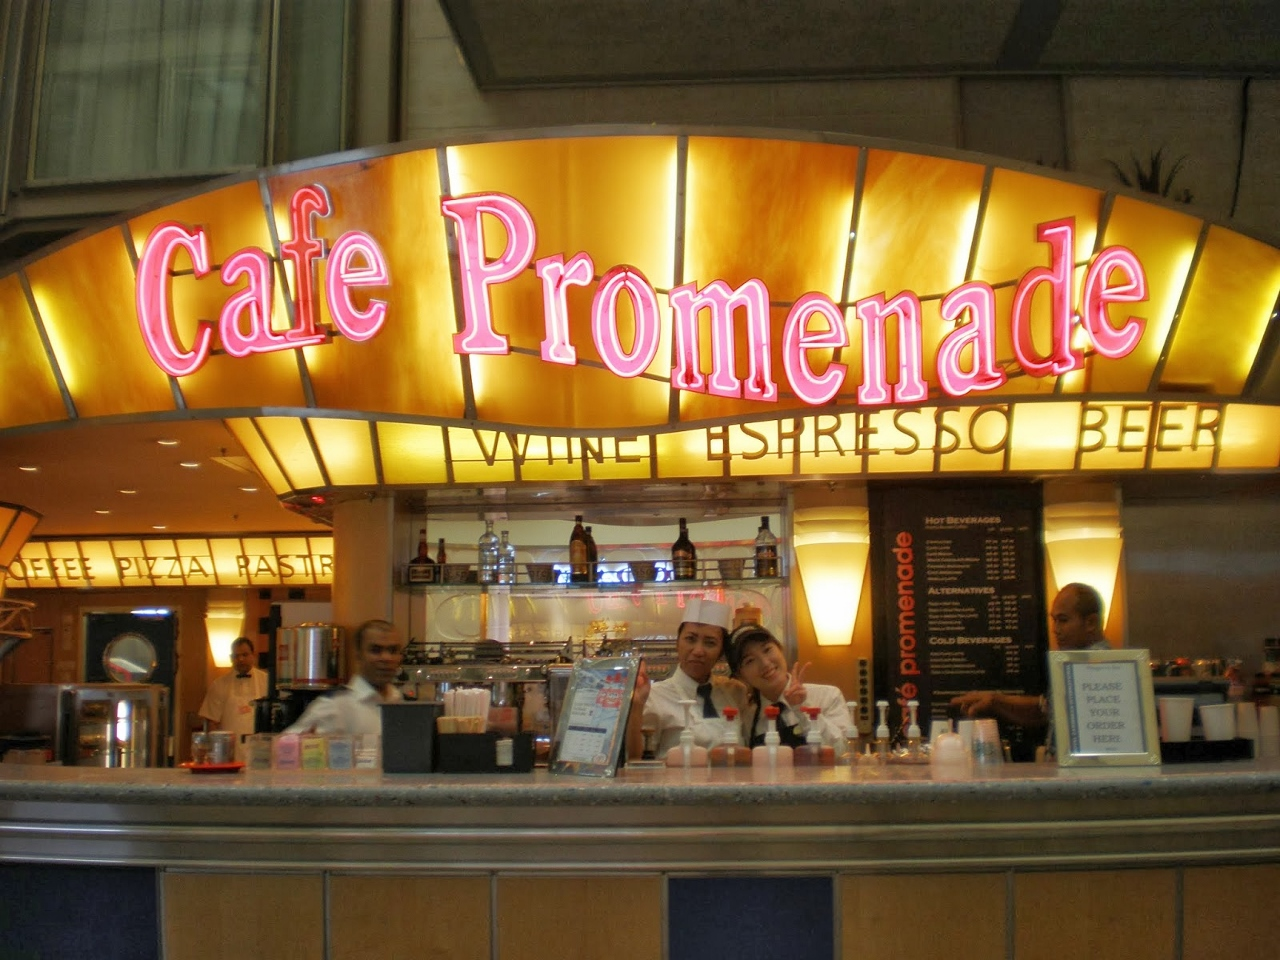 Cafe Promenade on Voyager of the Seas.